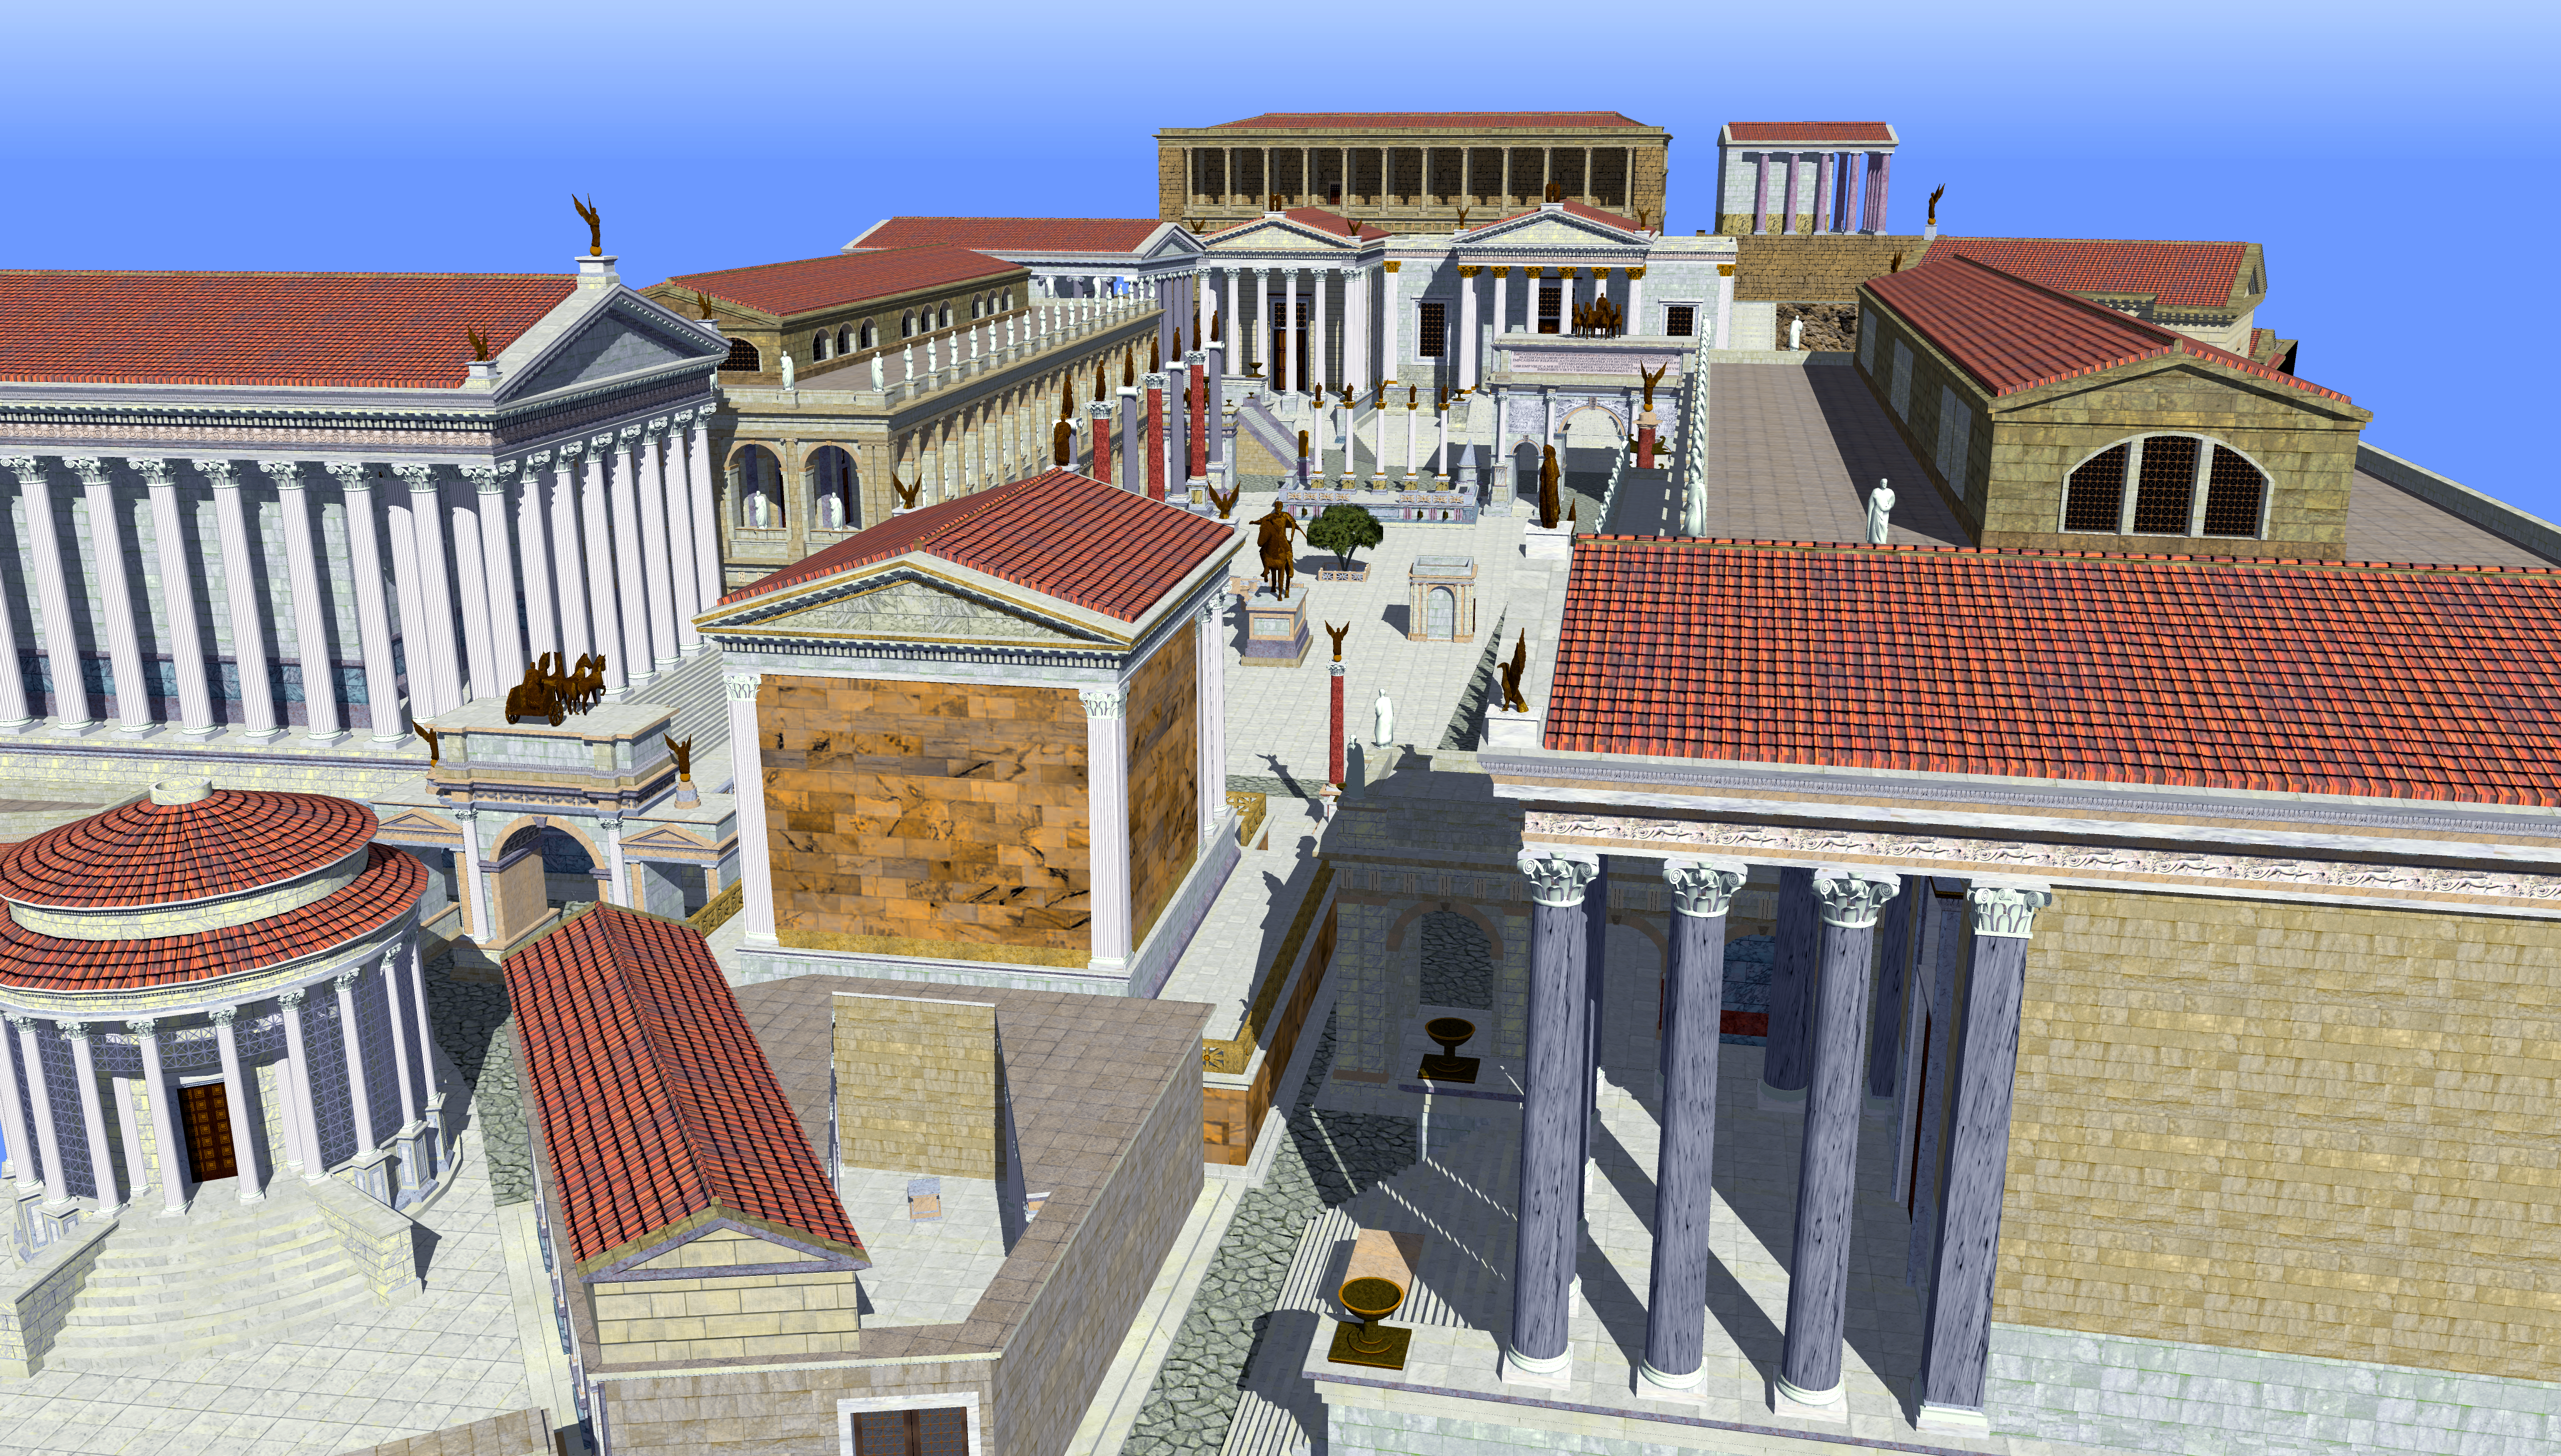 Computer generated image of the Roman forum.